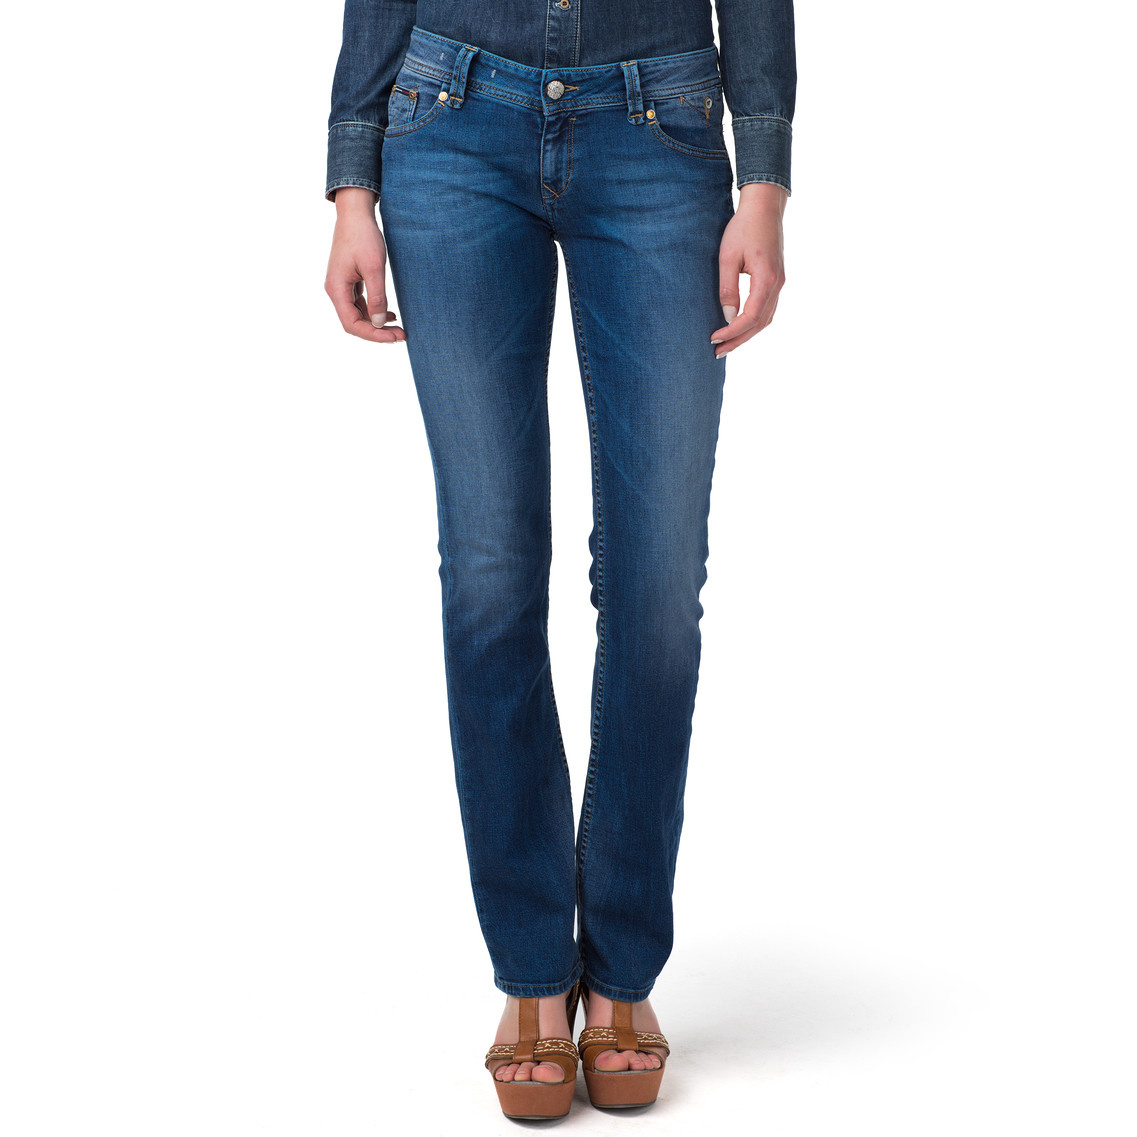 4936f3f2e Tommy Hilfiger Suzzy Straight Leg Jeans in Blue - Lyst